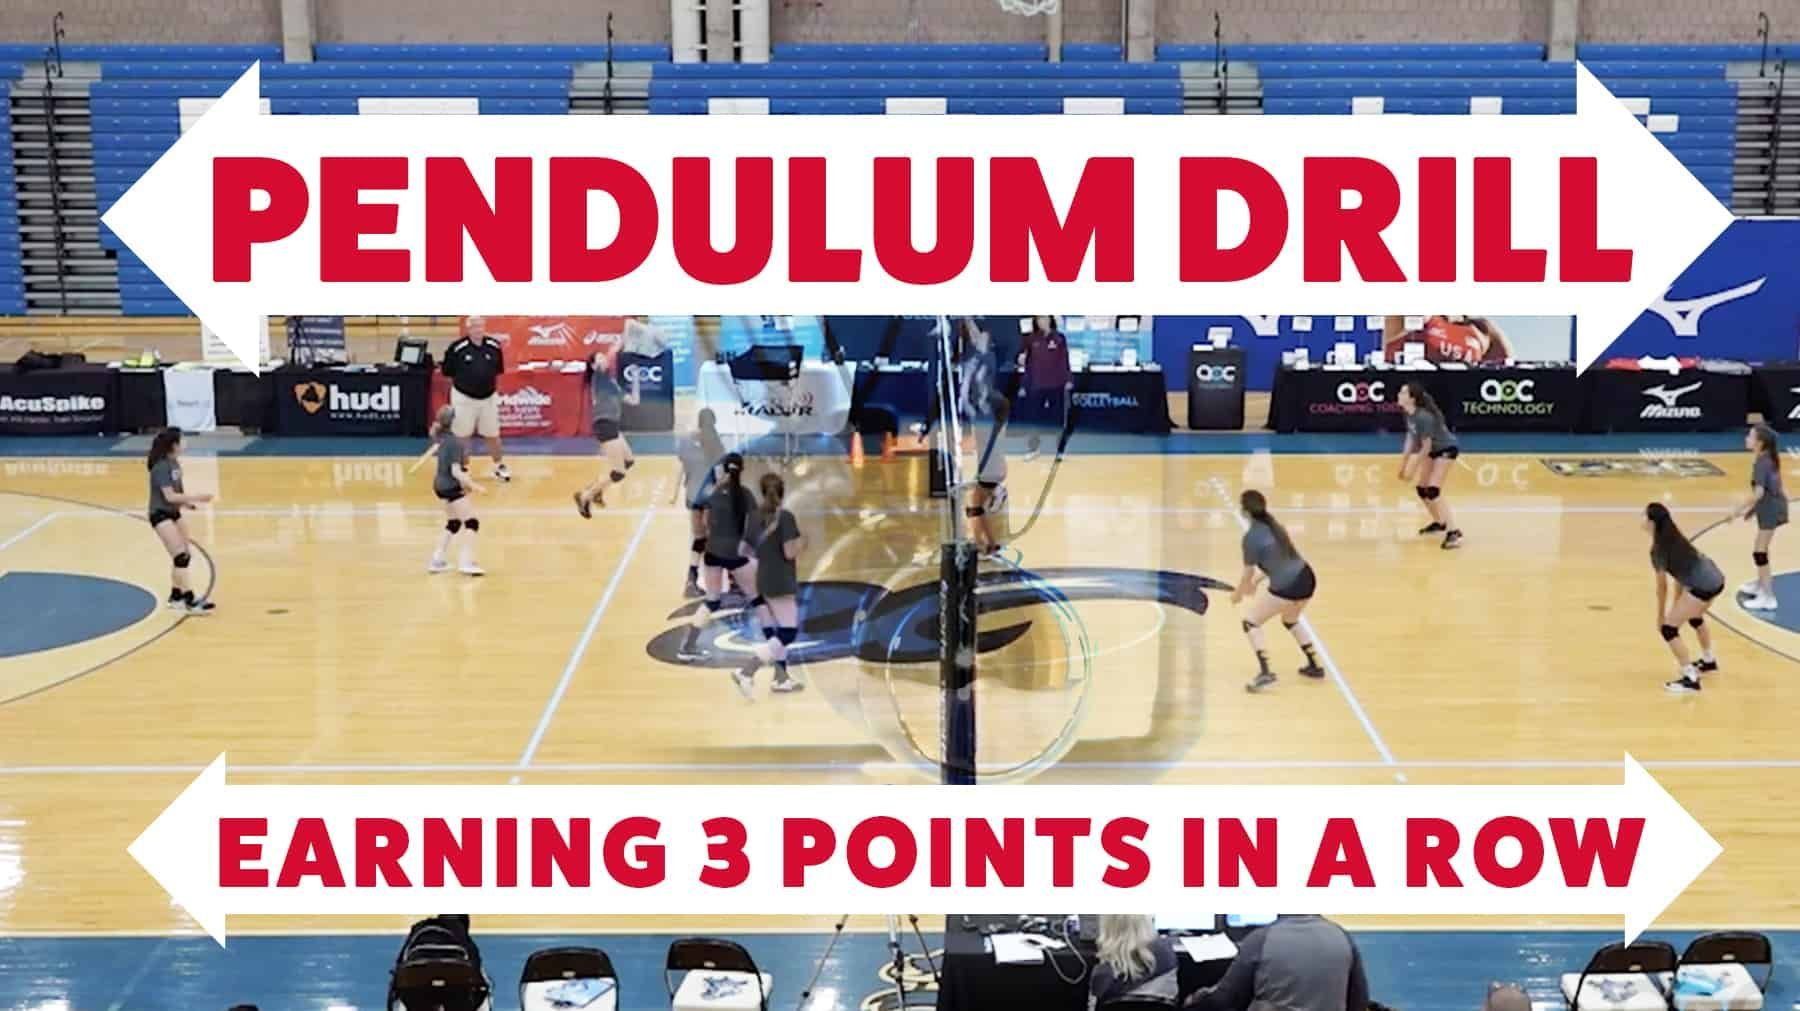 Pendulum Drill Earning 3 Points In A Row Volleyball Volleyball Tryouts Volleyball Practice